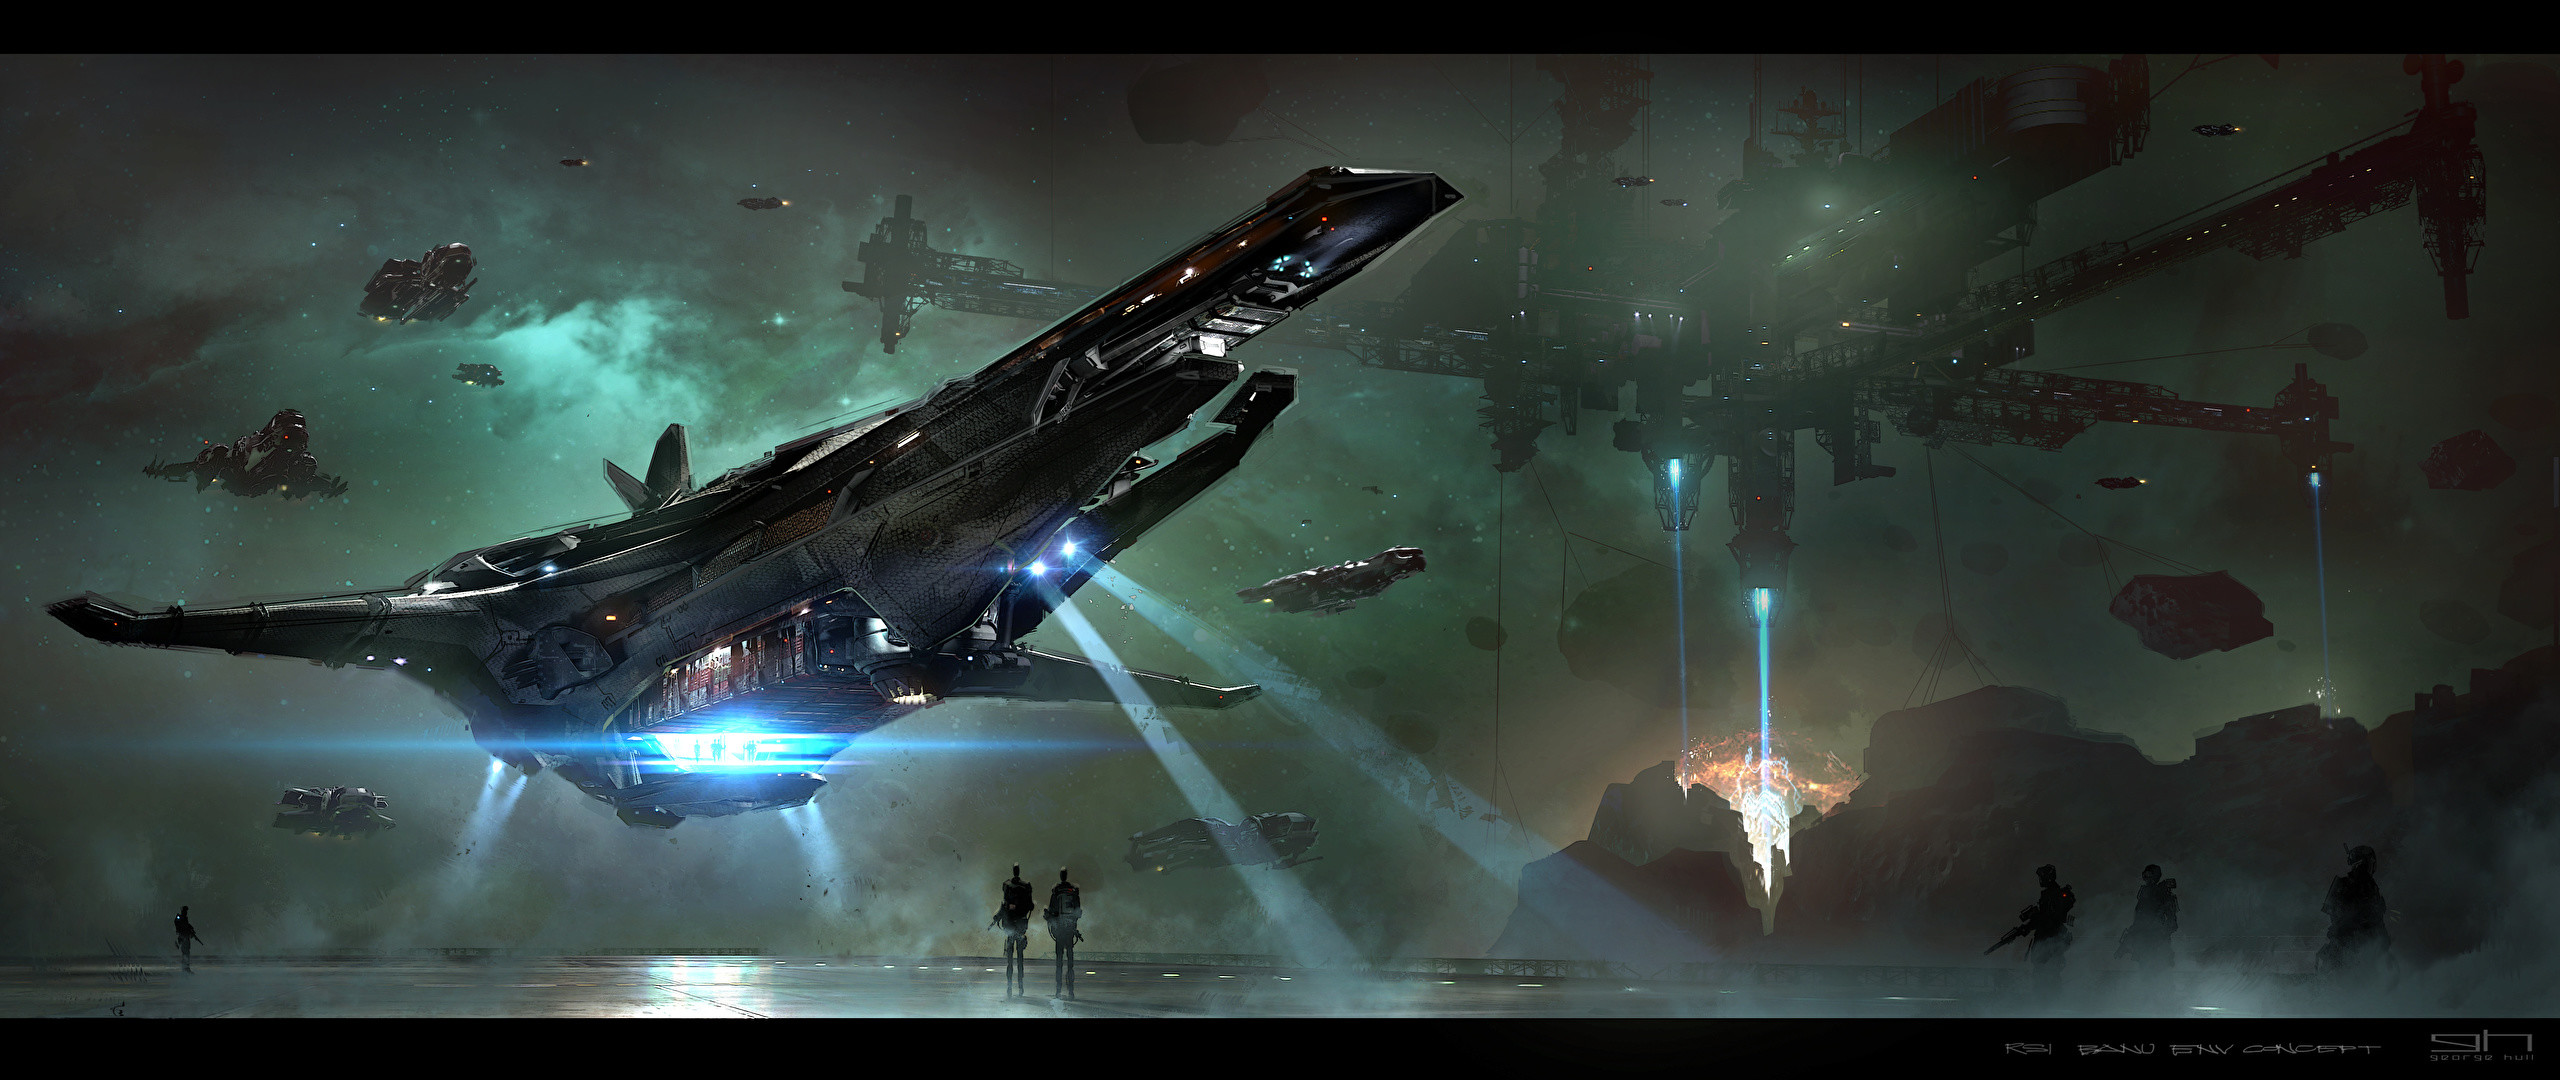 Space fantasy wallpaper 69 images - Fantasy wallpaper 3440x1440 ...